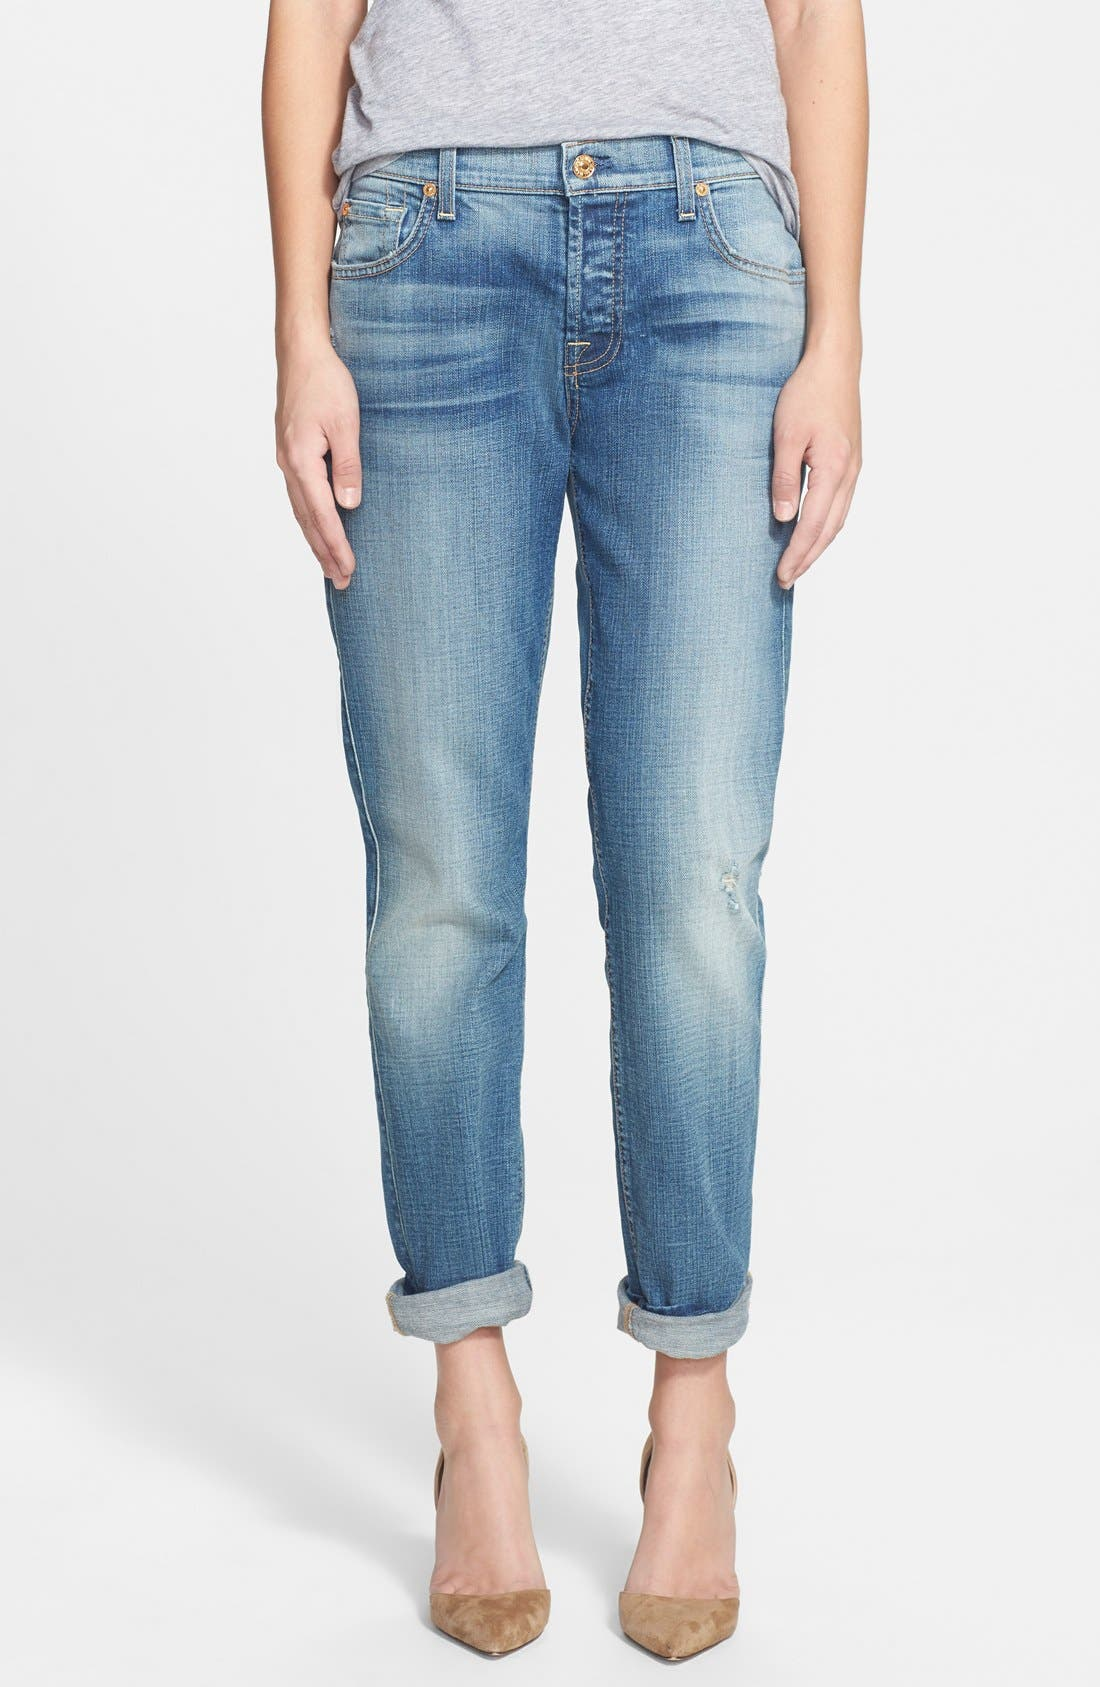 Alternate Image 1 Selected - 7 For All Mankind® 'Josefina' Boyfriend Jeans (Aggressive Atlas Blue)